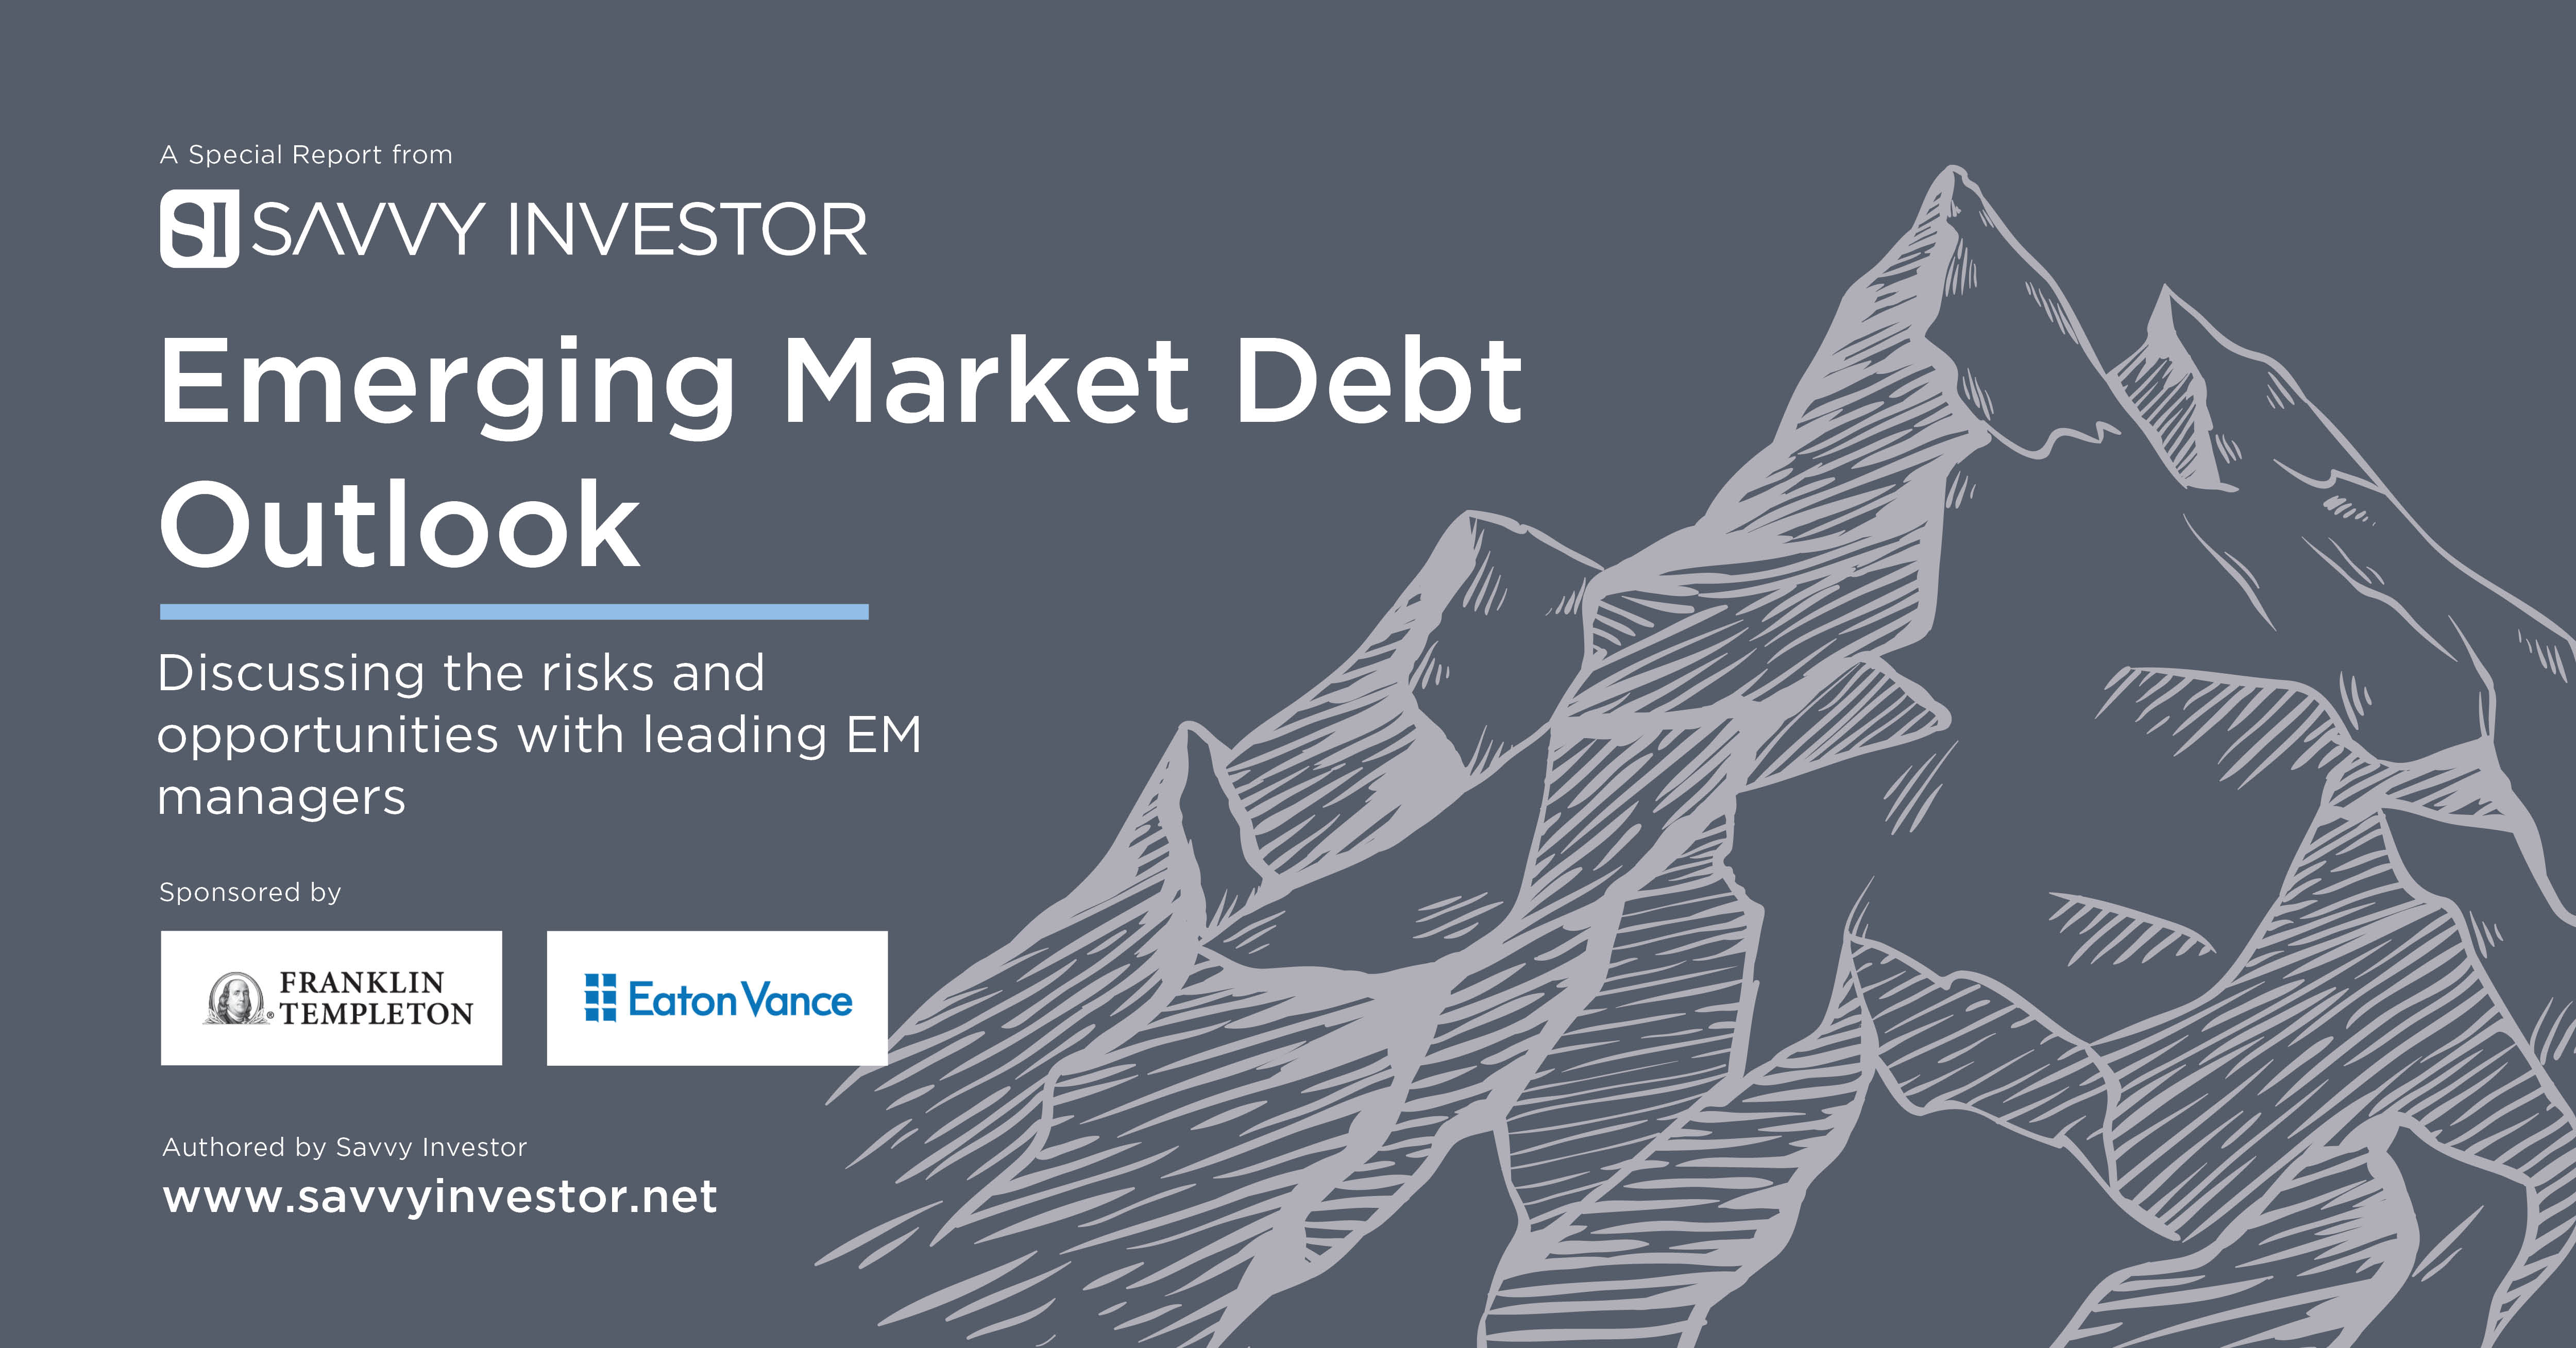 Special Report on Emerging Market Debt